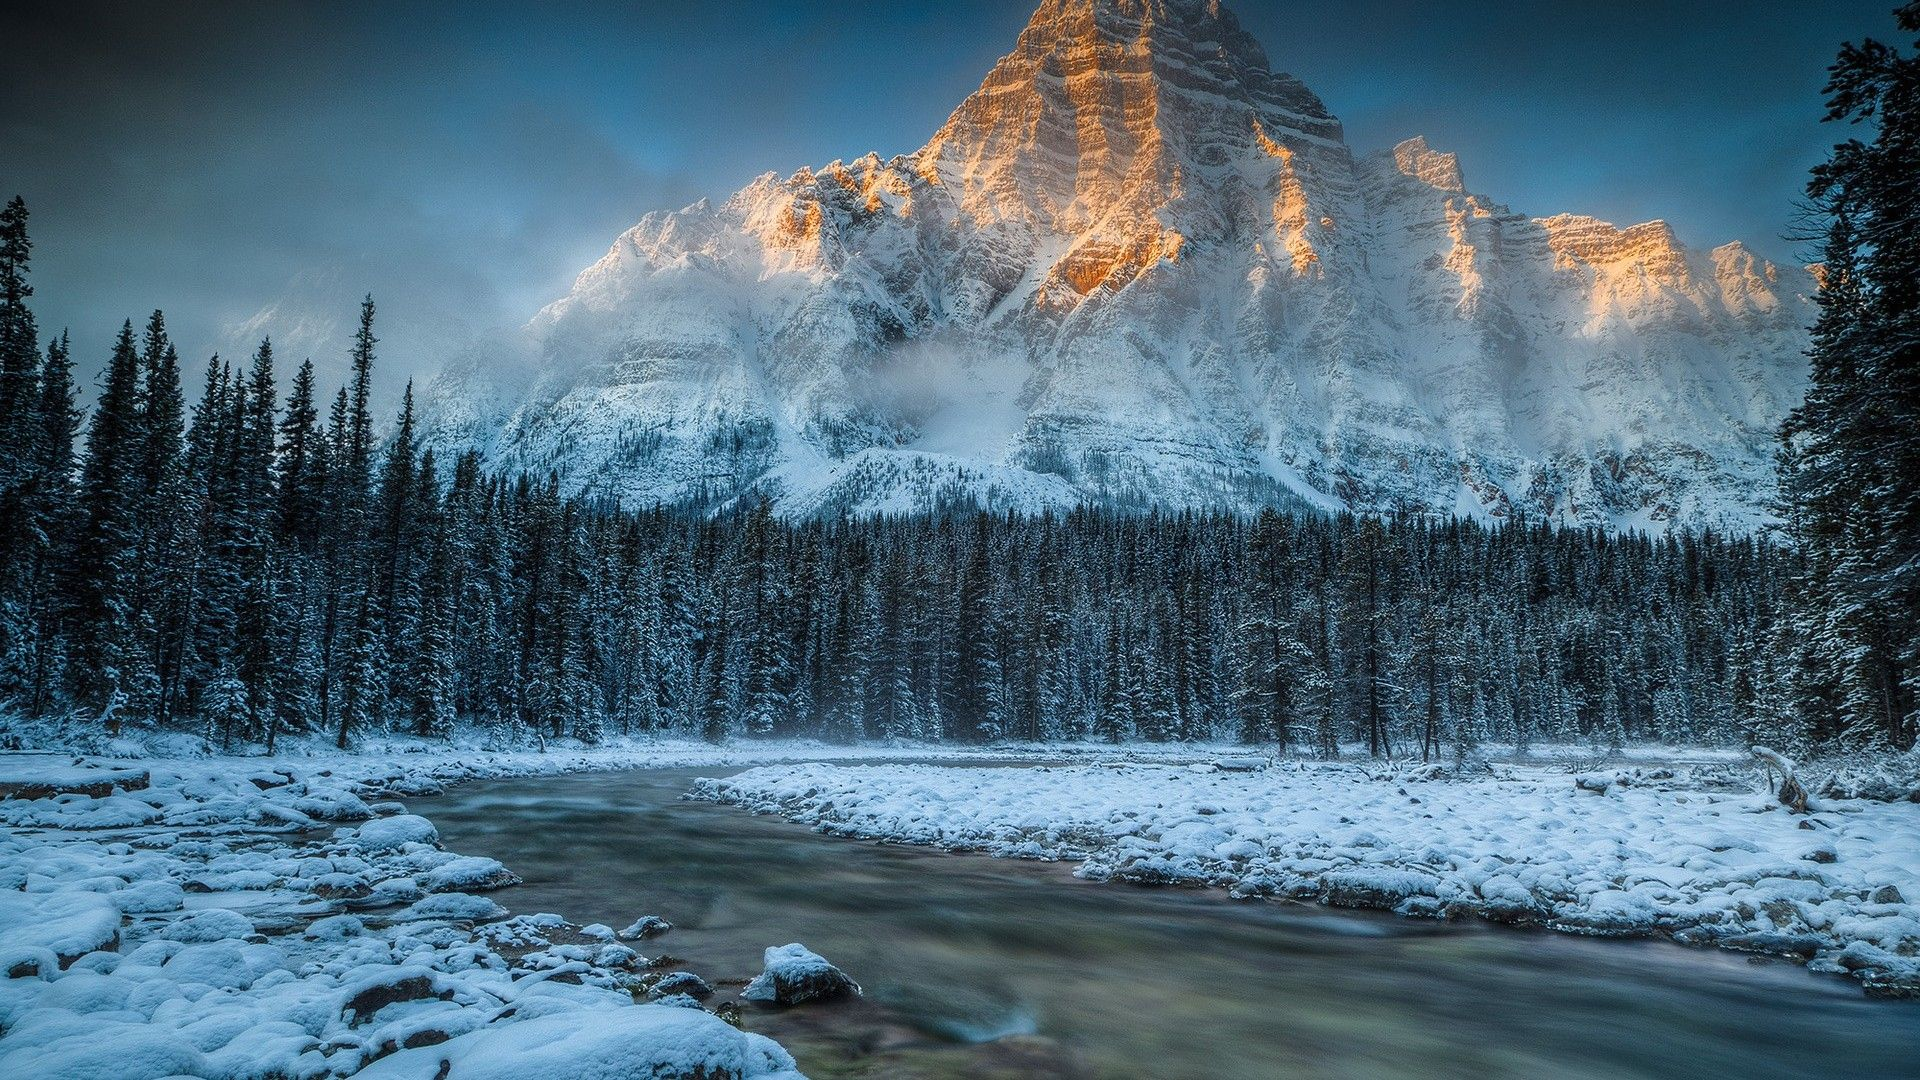 Snowy mountain nature landscape hd wallpaper fantasy - Hd snow mountain wallpaper ...